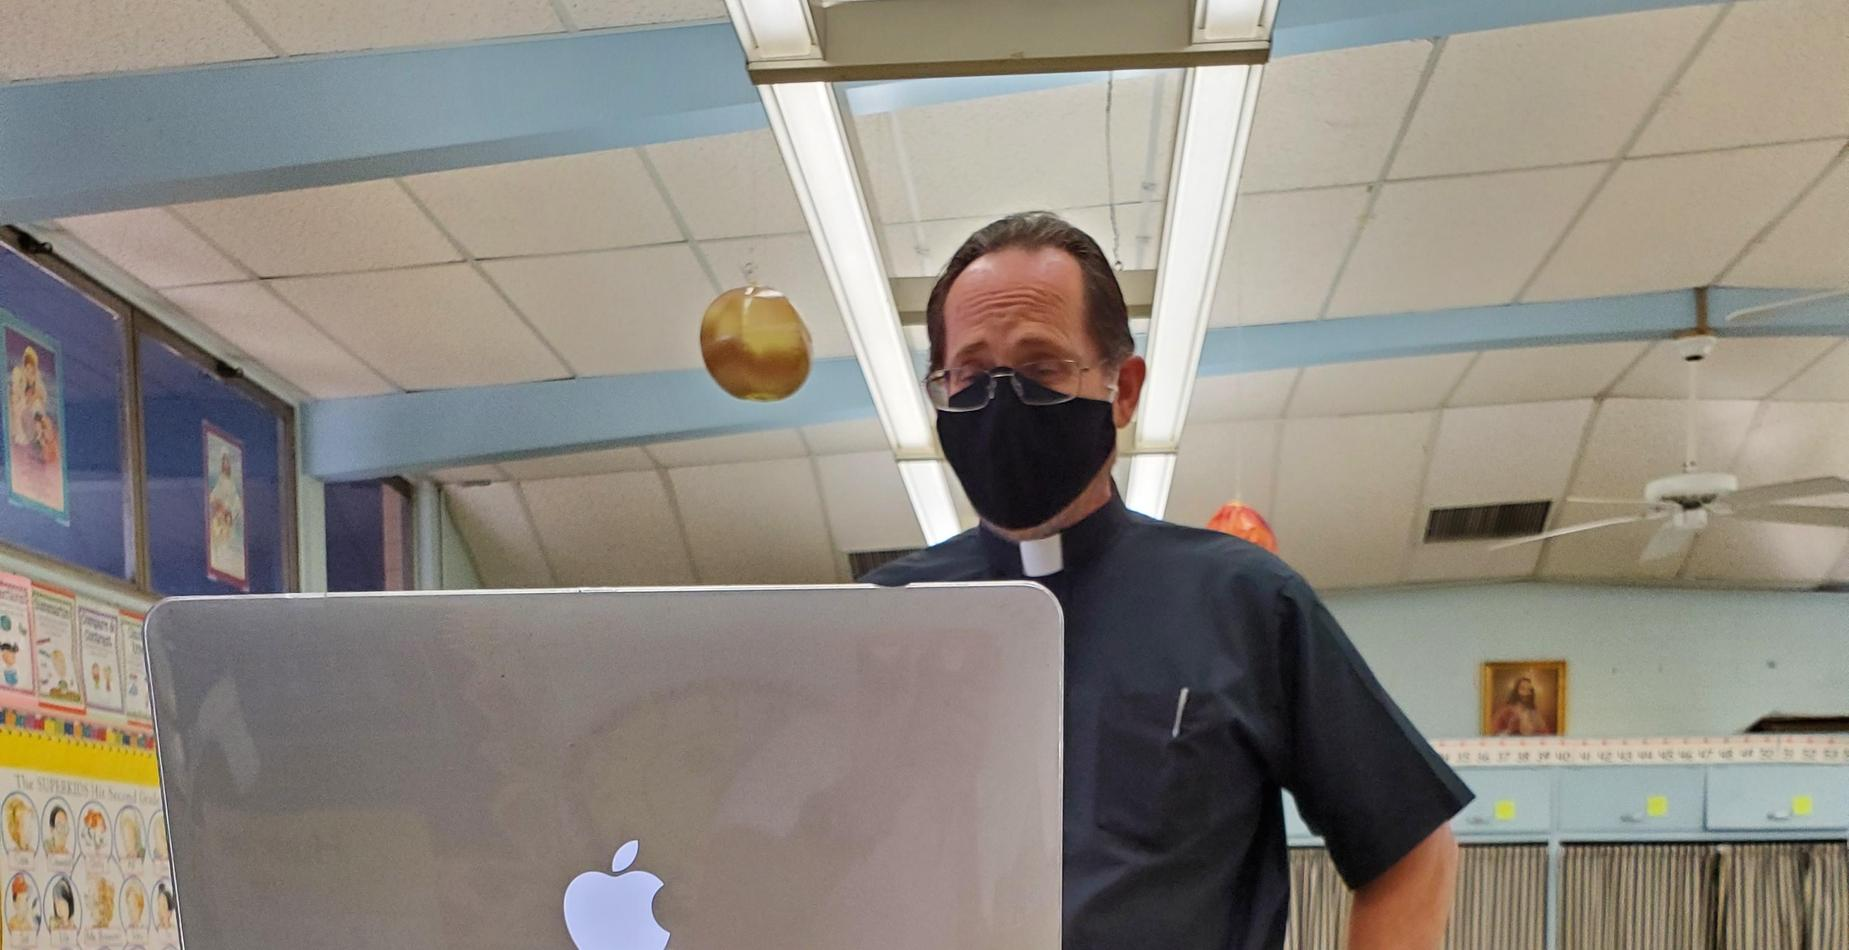 Father Ron teaching a class using virtual learning on Zoom